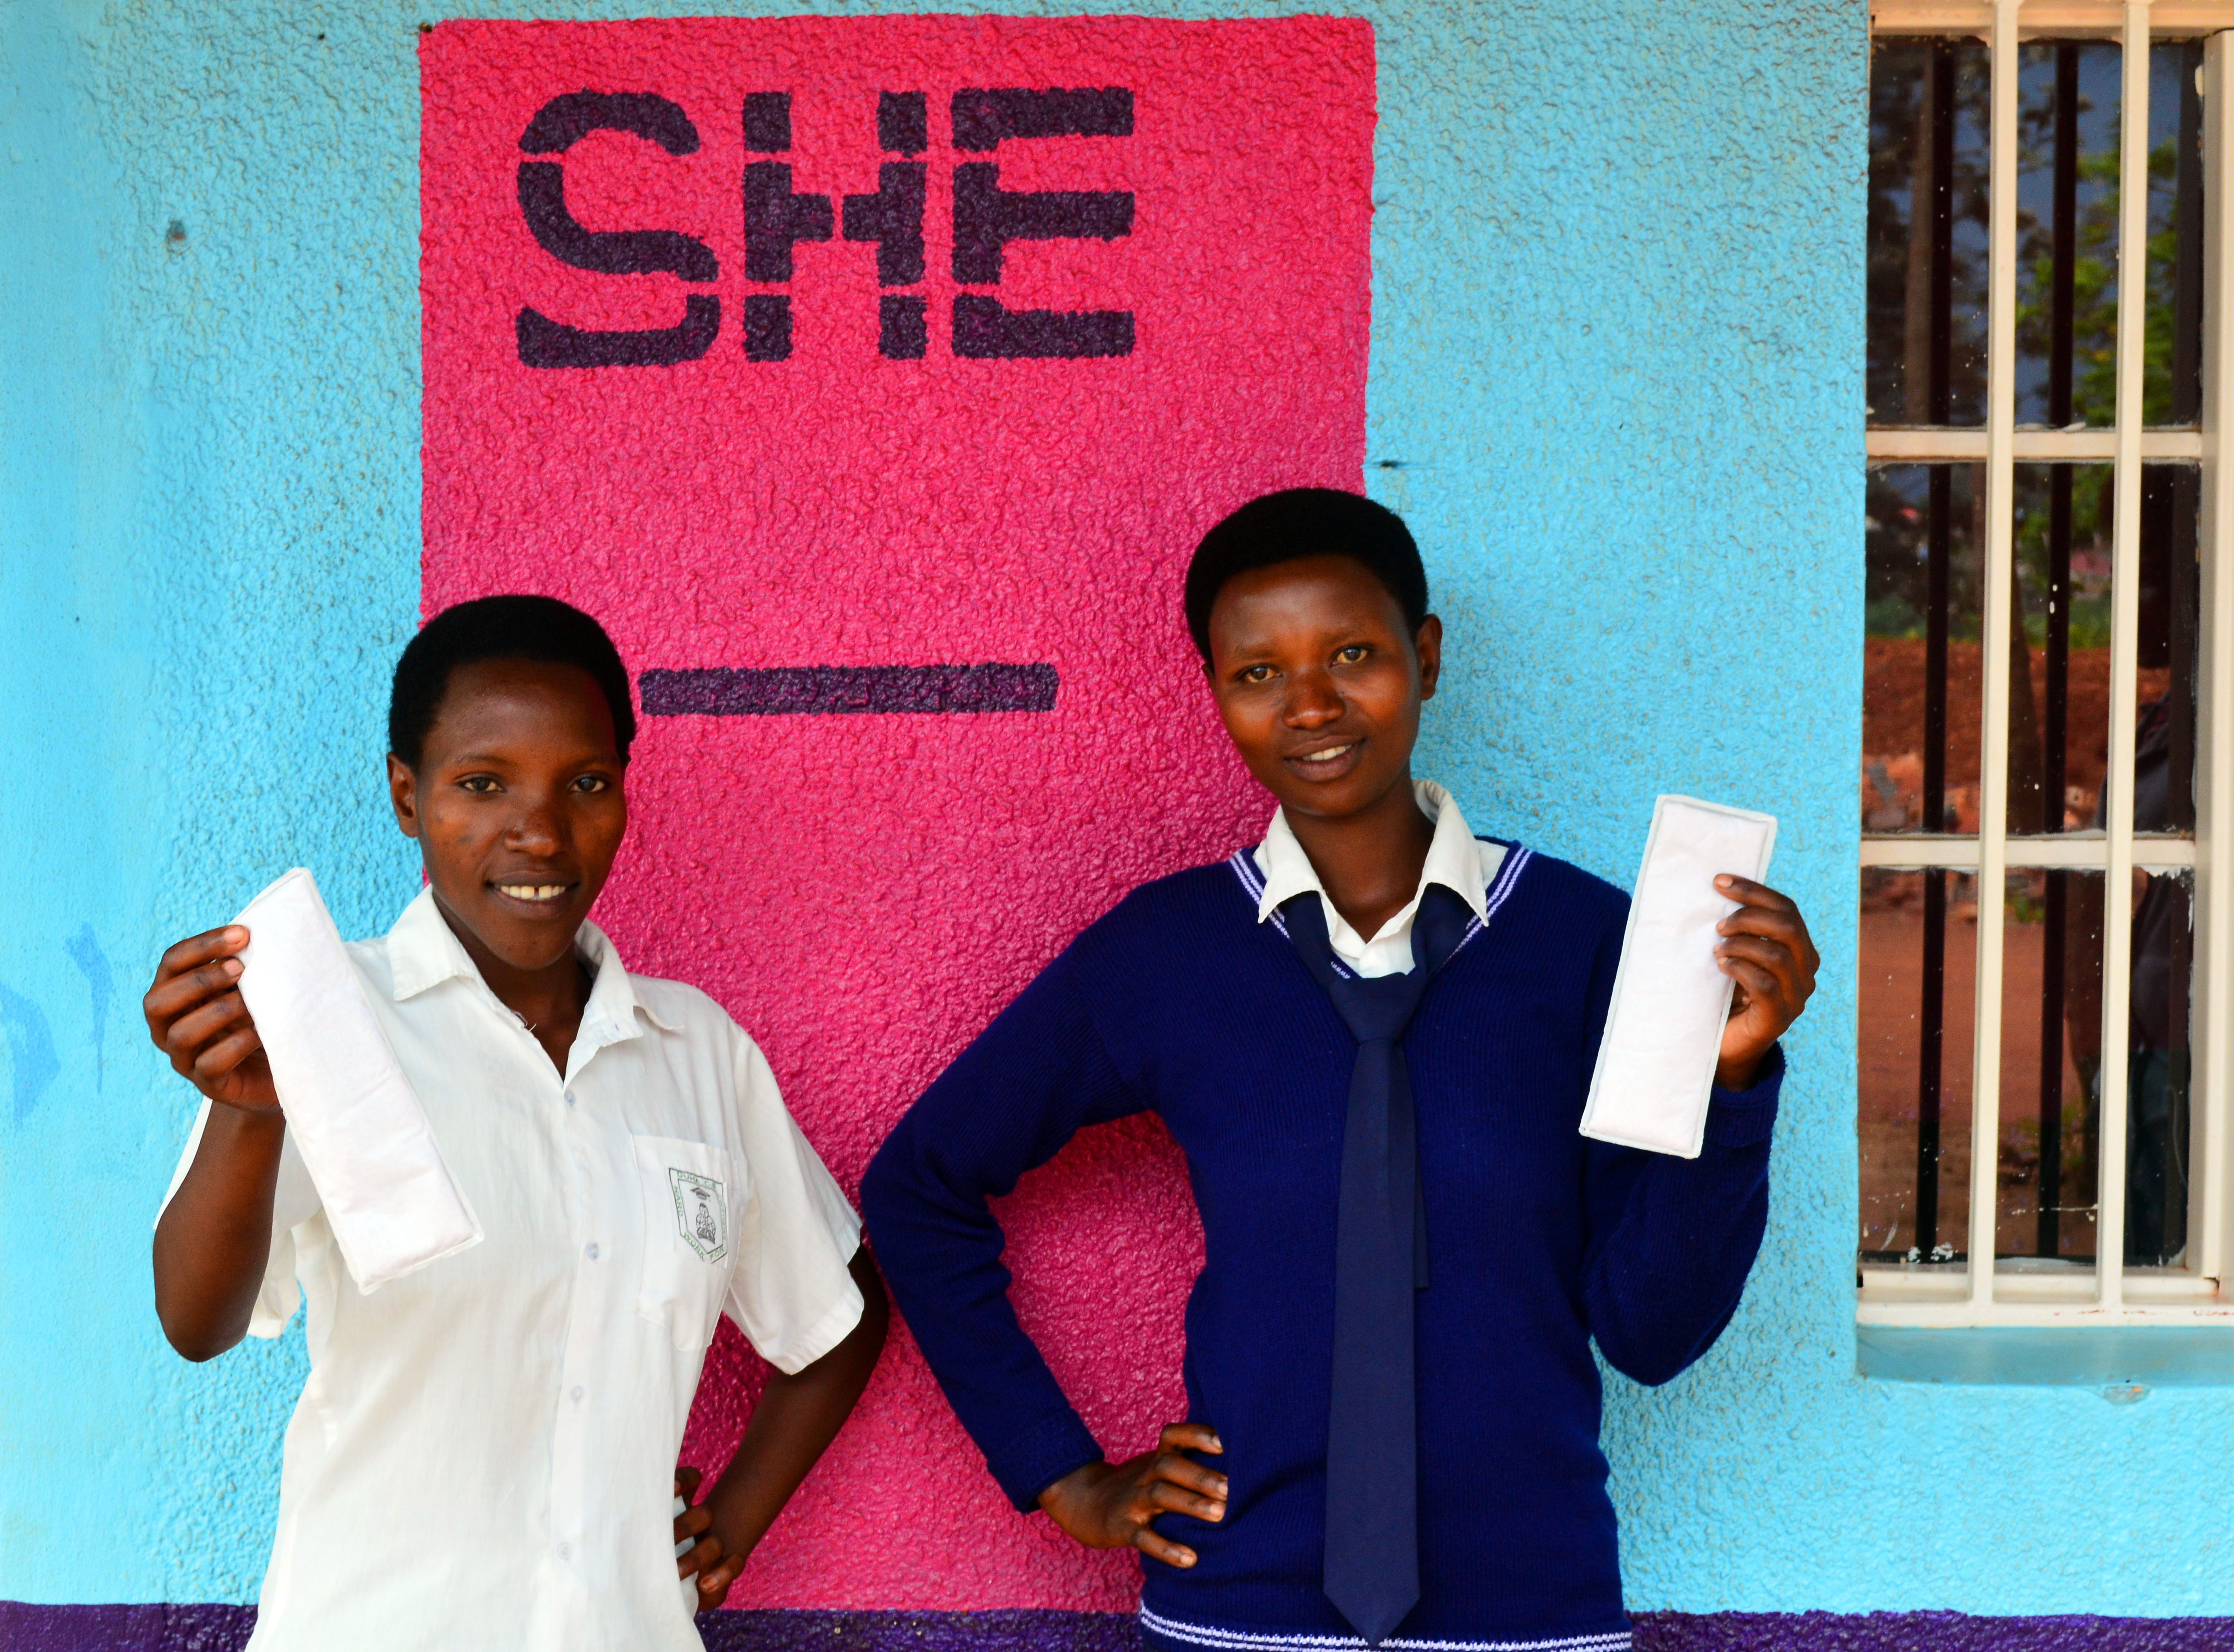 Trained 50 community health workers to sell menstrual pads to 5,000 women and girls.